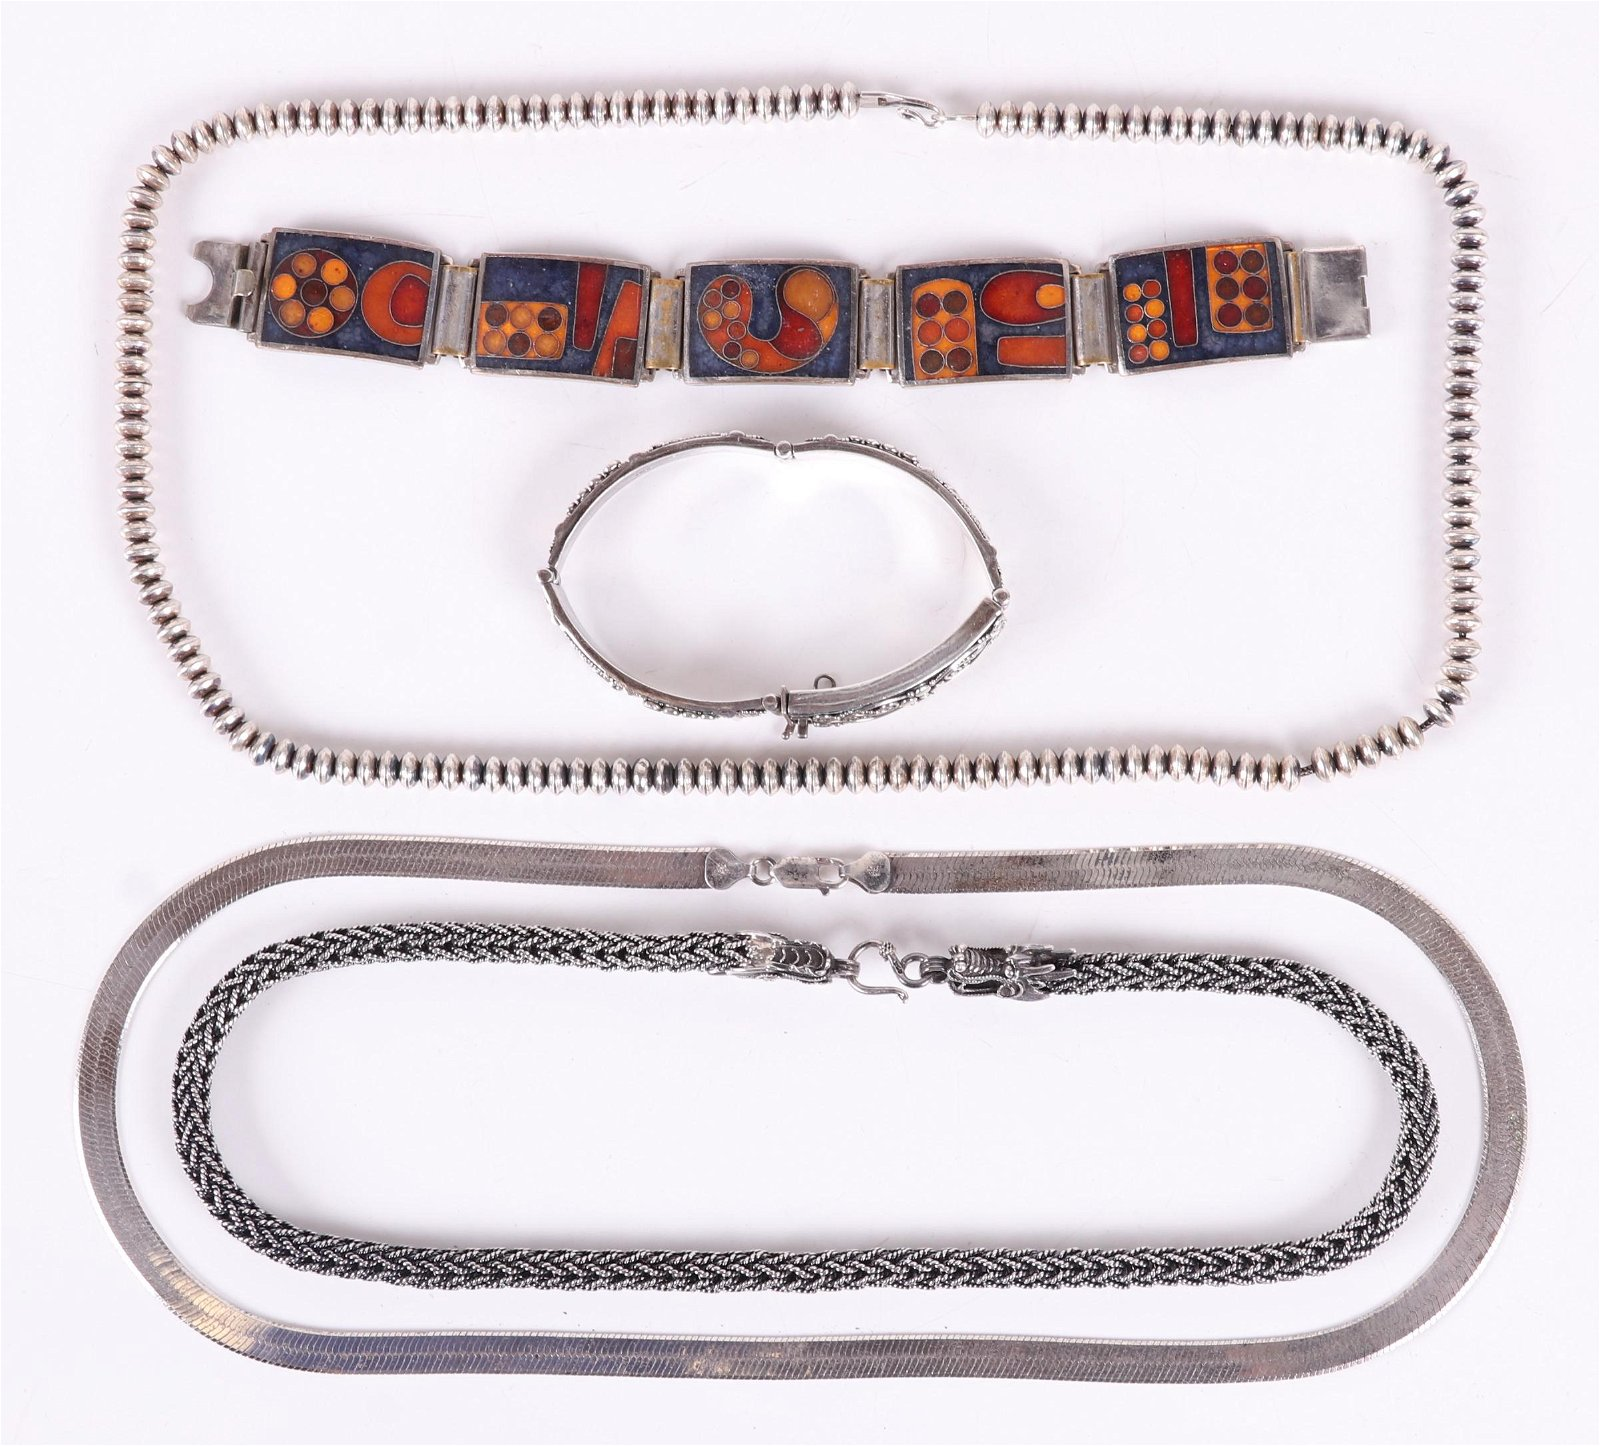 A Group of Estate Jewelry, Sterling